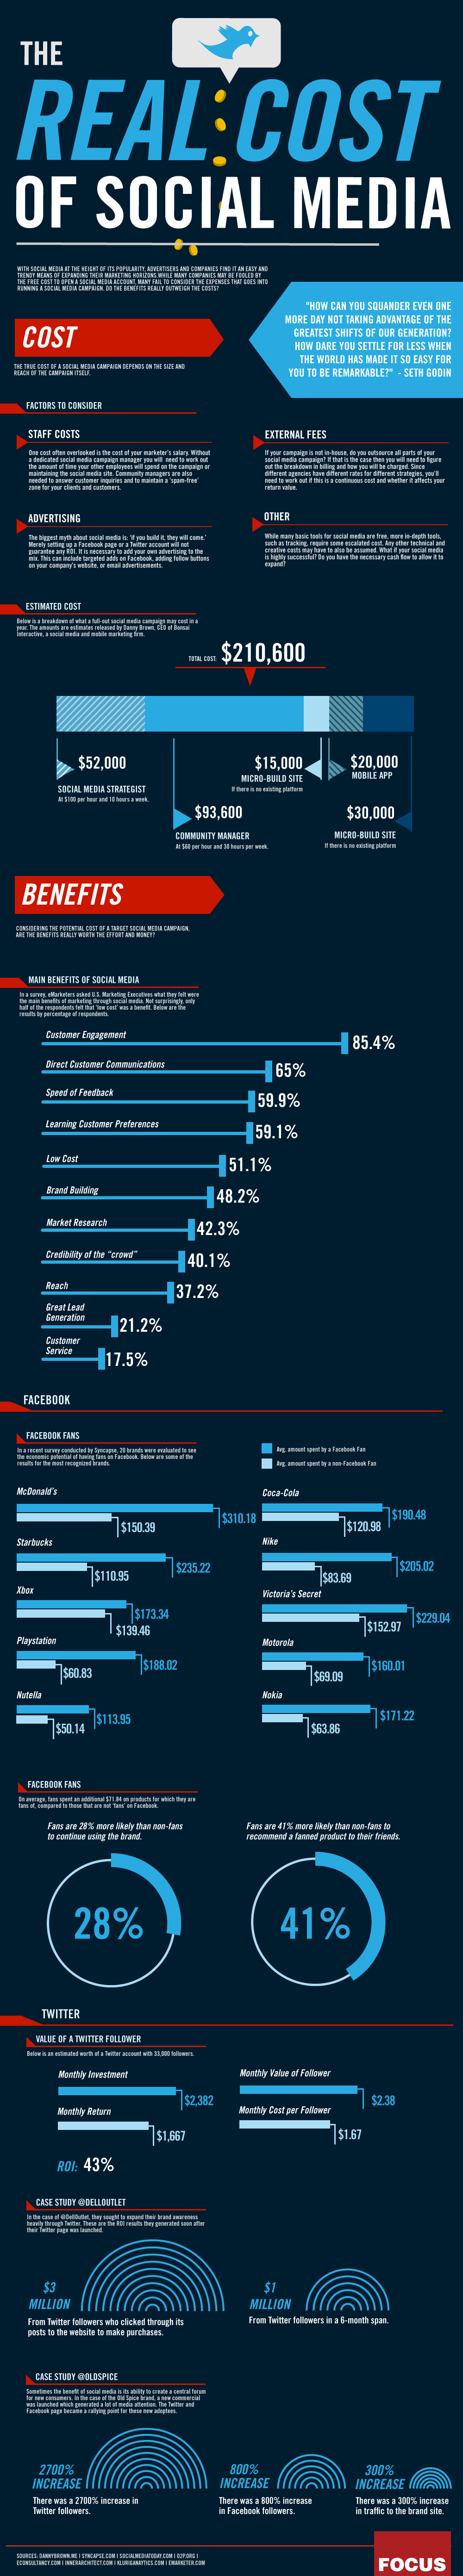 Infographic The Real Cost Of Social Media